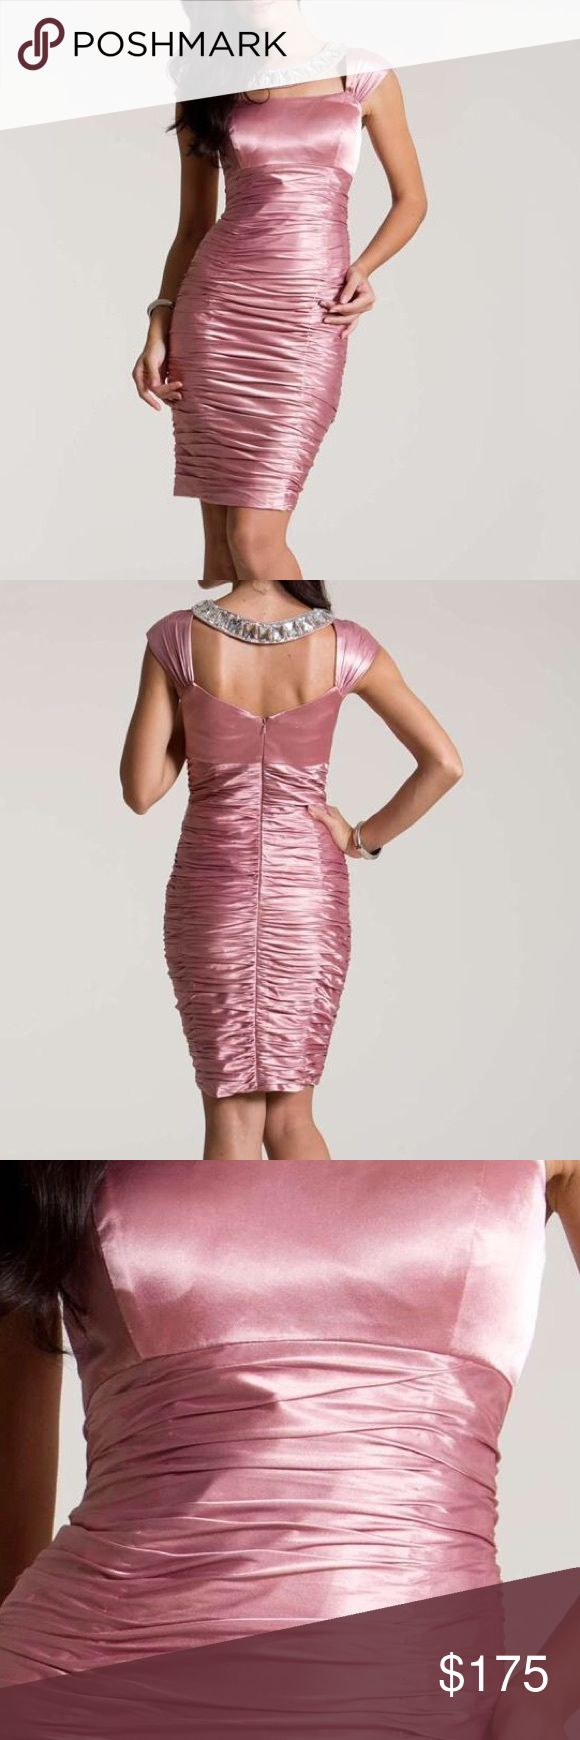 Beautiful Pink Nika Dress Lovely and sweet, this charming cocktail dress by Nika 8093 is a pretty and playful choice for your next party. A unique bejeweled necklace leads to cap sleeves and a cutout neckline. Sleek to the empire waist, this fabulously ruched look will hug your curves and enhance your figure. This body conscious dress is sure to make him smile. NIKA Dresses